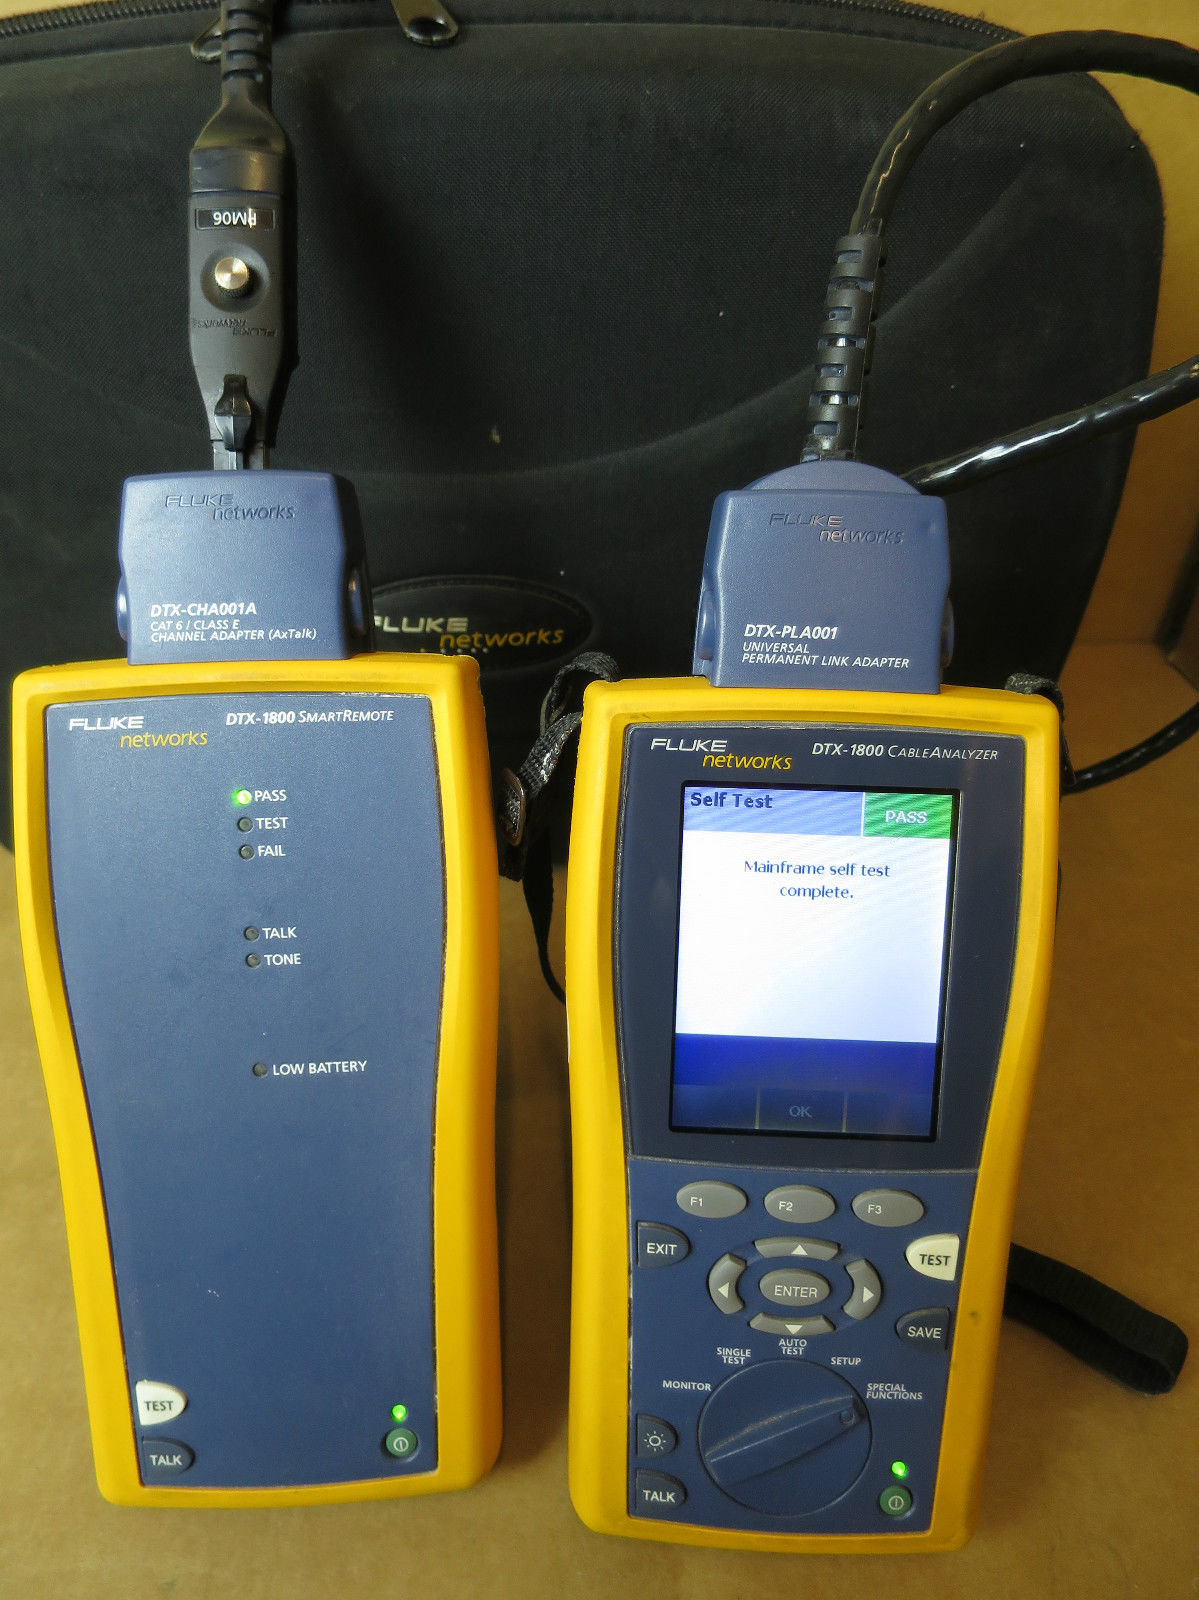 Cat 5e Cable Testers : Fluke networks dtx cat e digital cable